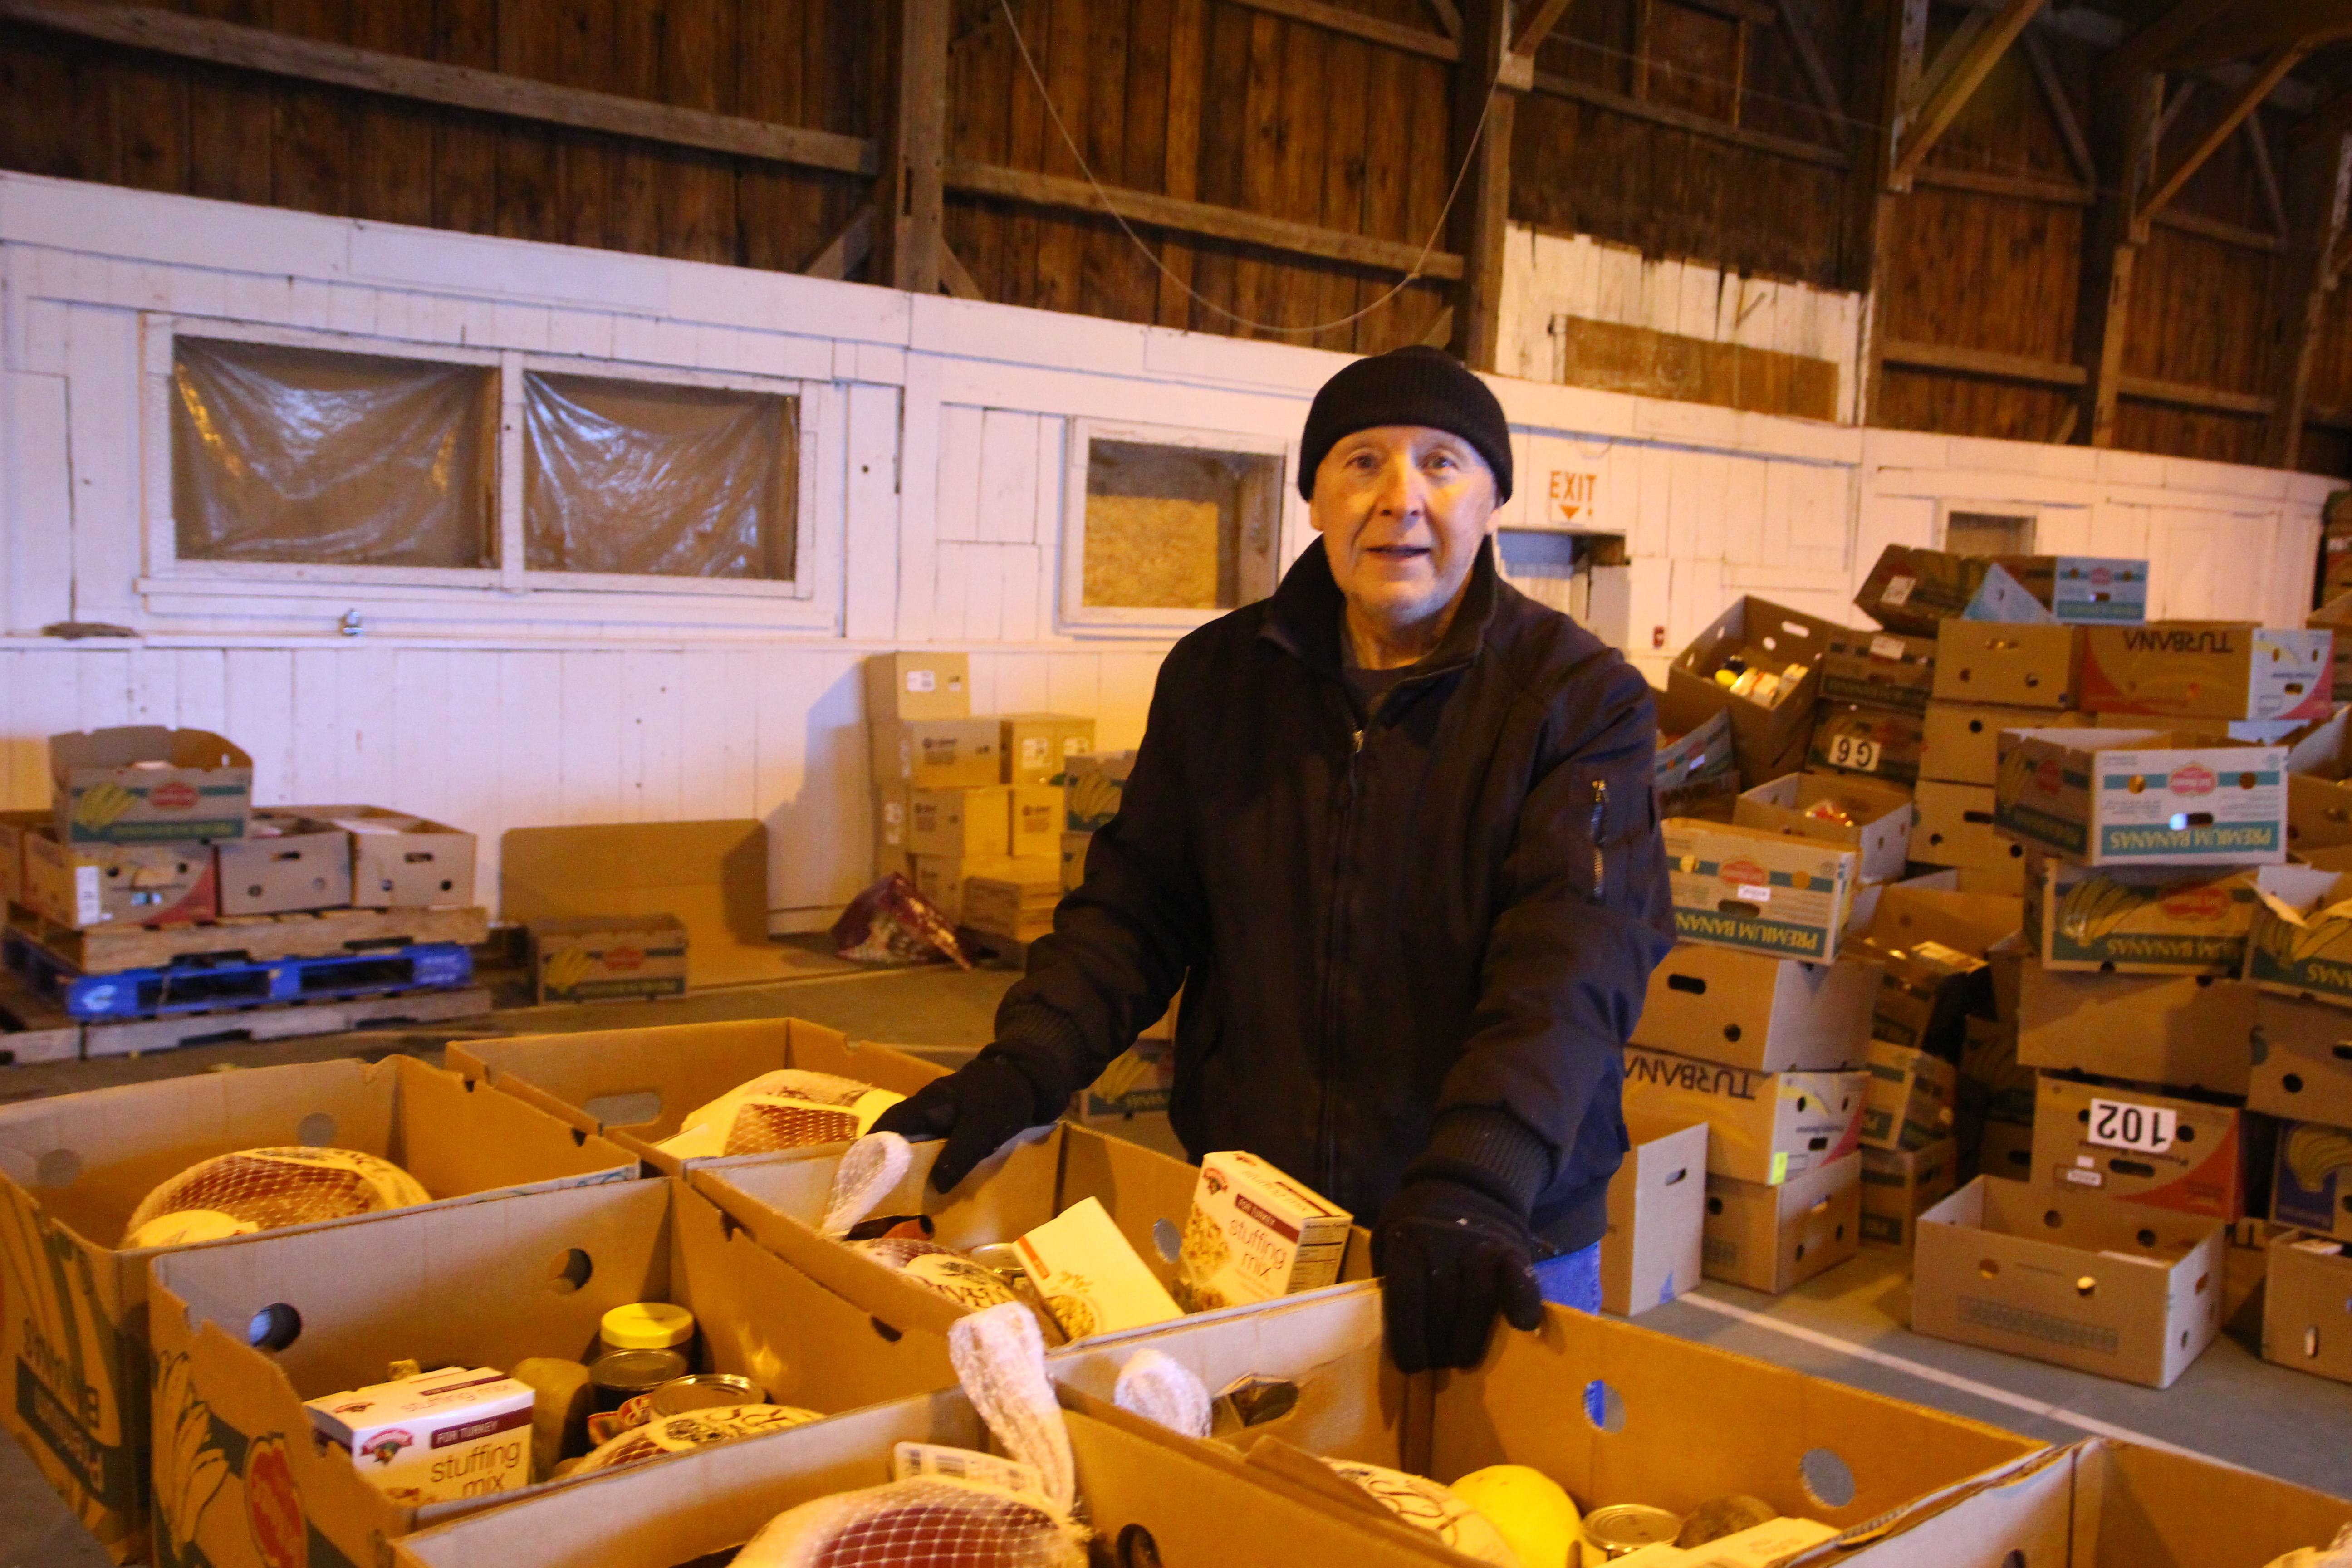 Ernie Cote of Shapleigh, a volunteer with the York County Shelter food pantry in Alfred, helps fill food boxes for the annual Thanksgiving distribution. The pantry expects to supply 1,500 to 2,000 Thanksgiving boxes this week. TAMMY WELLS/Journal Tribune